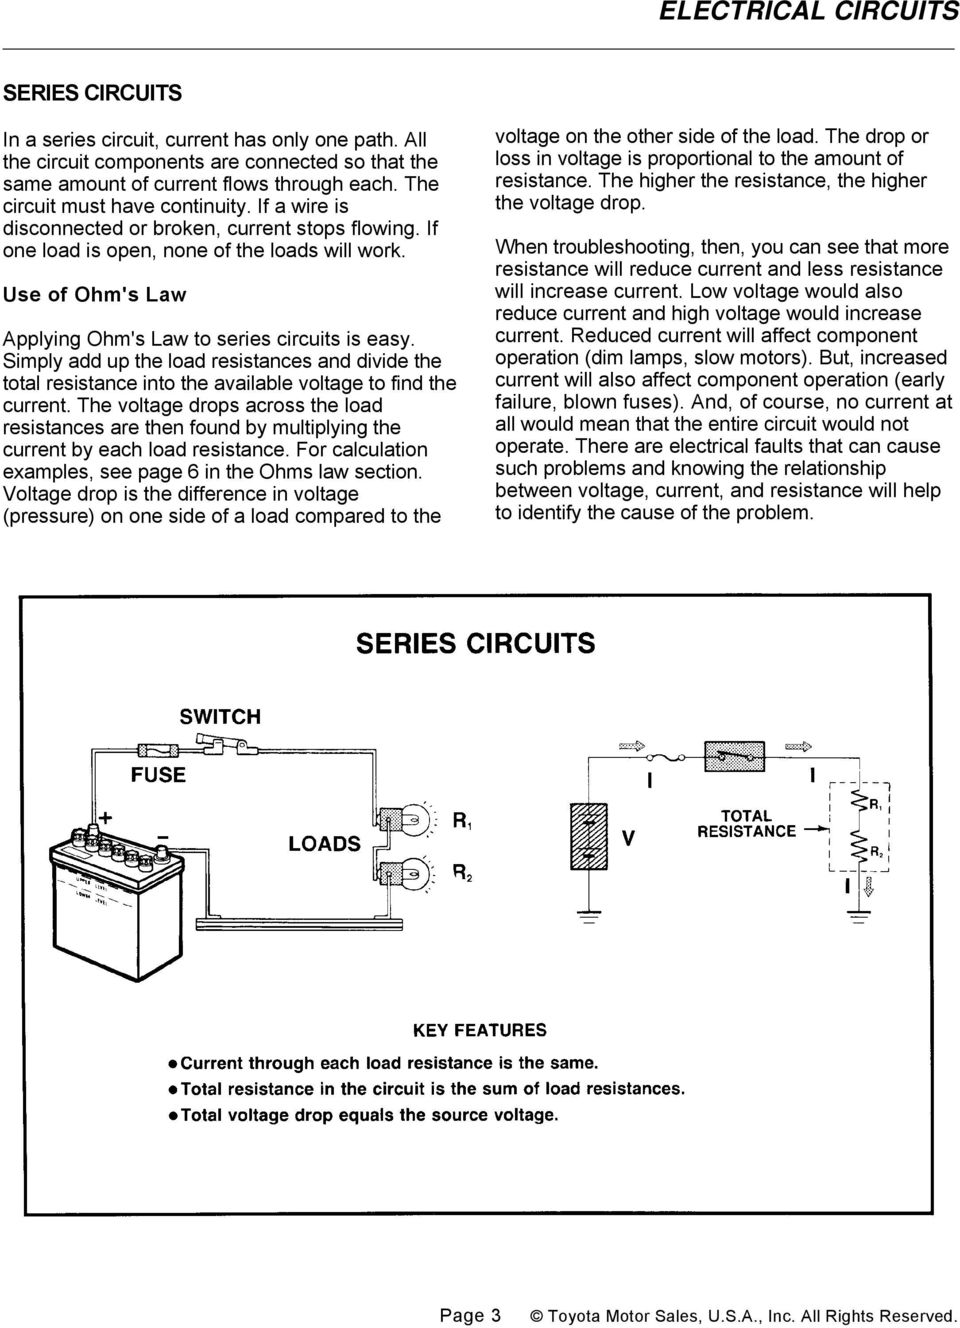 Electrical Circuits Pdf Simple Electric Circuit Made Up Of A Voltage Source And Resistor Simply Add The Load Resistances Divide Total Resistance Into Available To